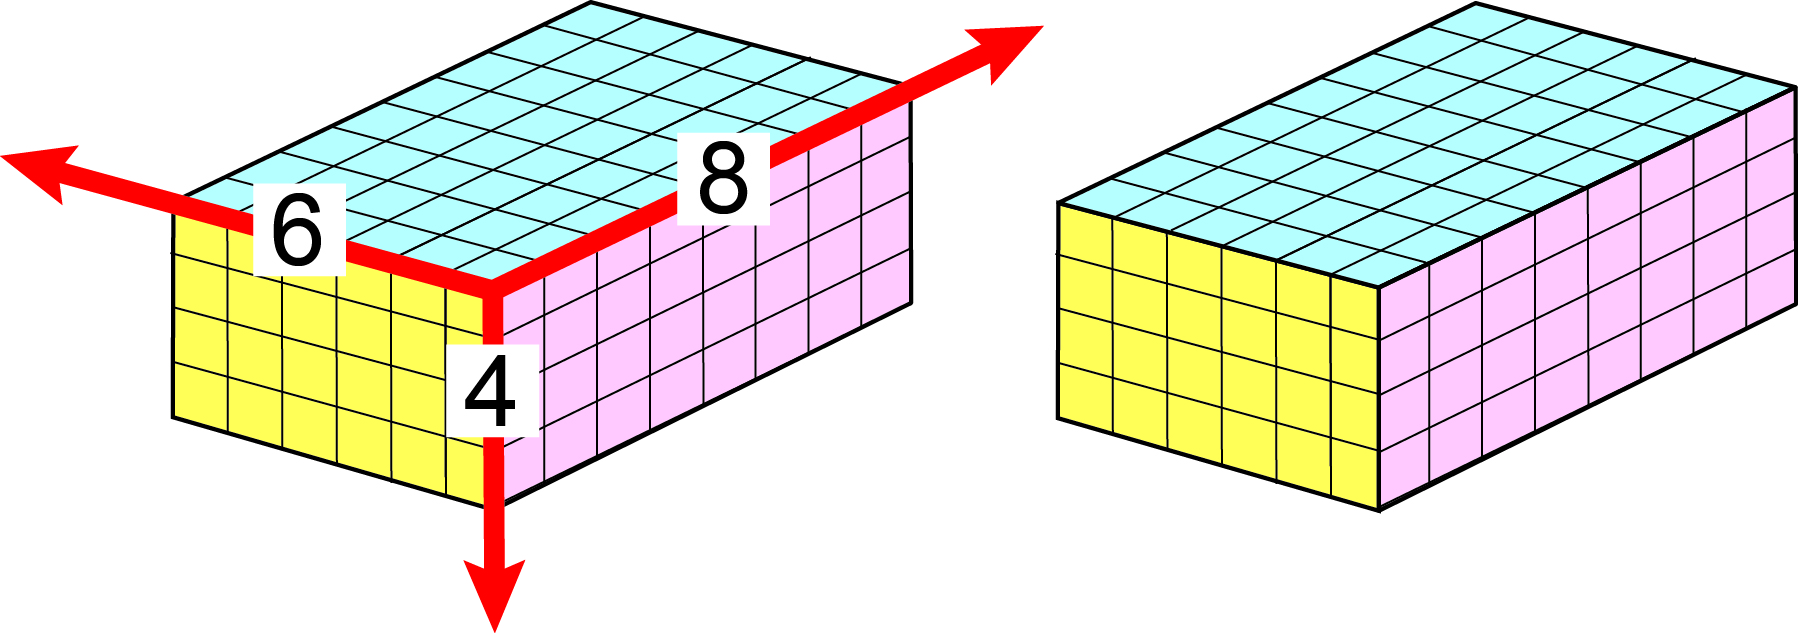 PLANNING AND FOLDING A CUBOID